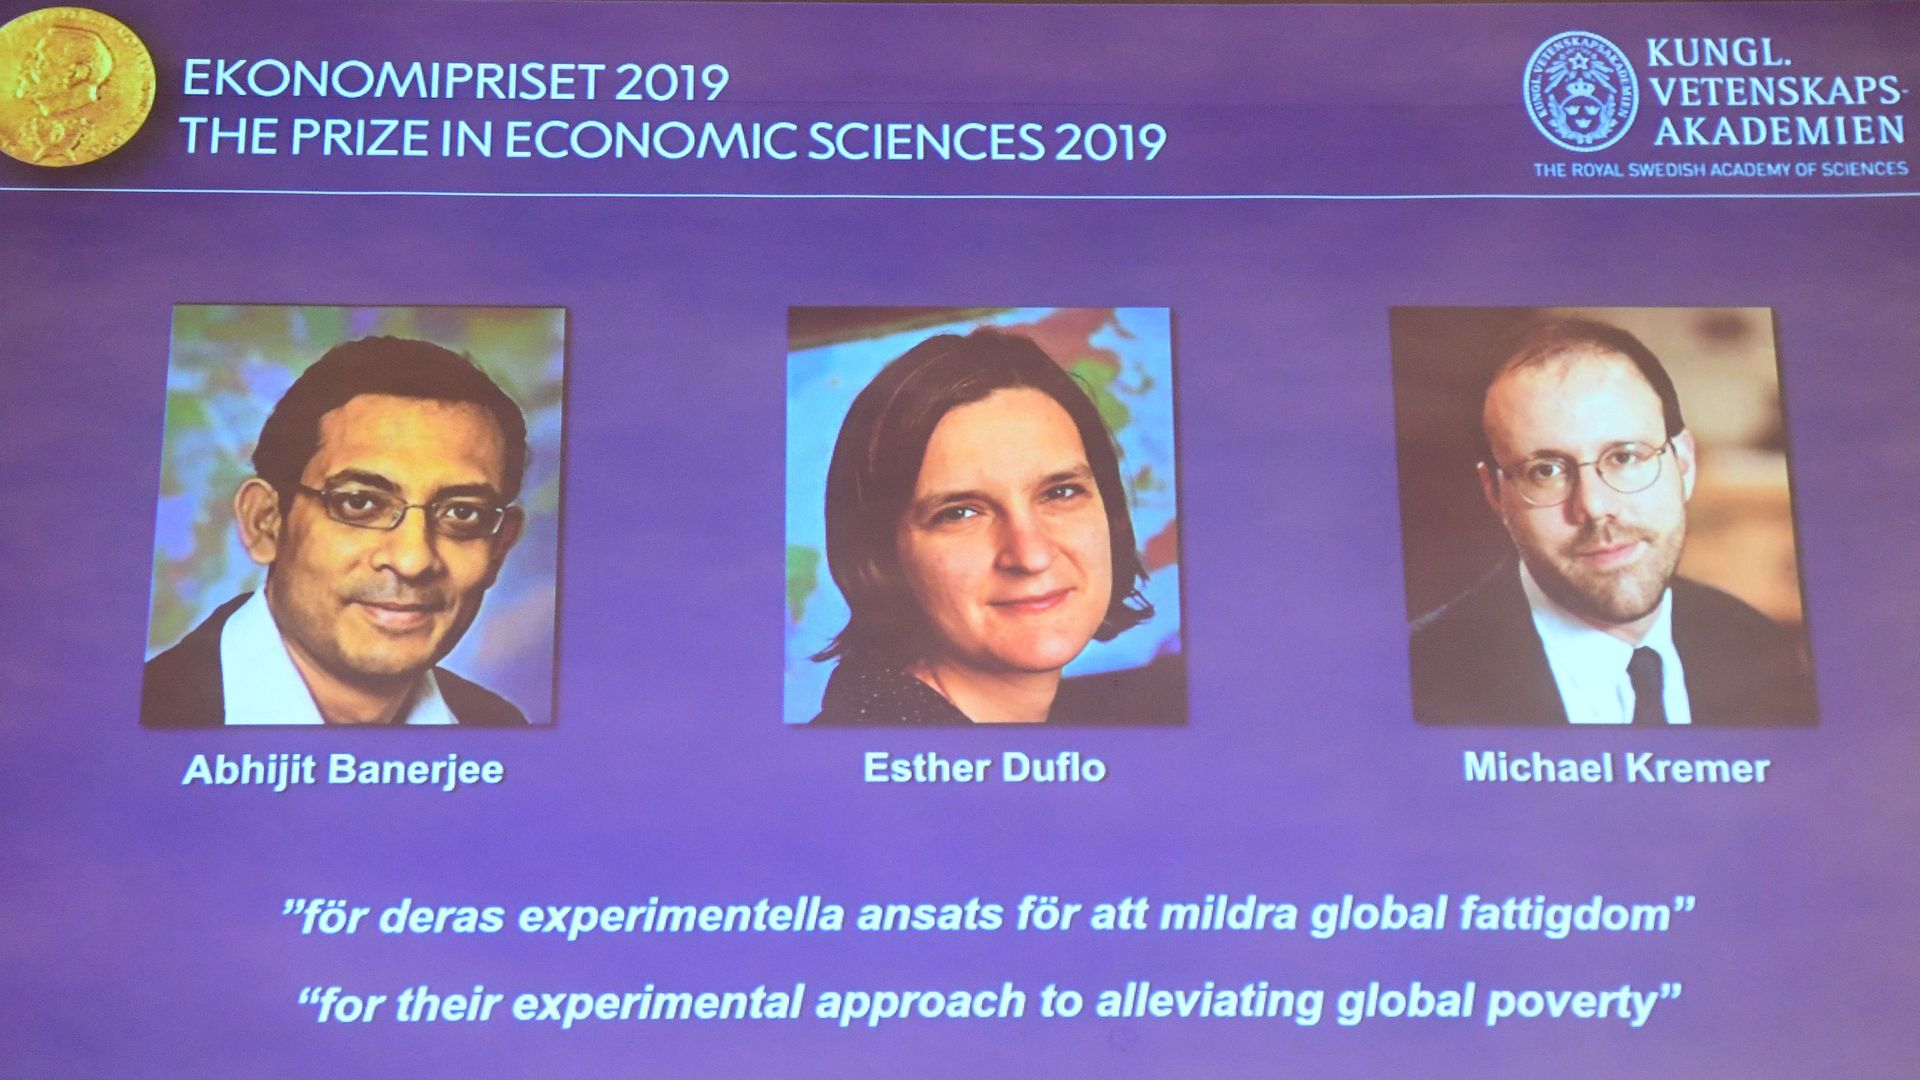 The winners of the 2019 Nobel prize in economic science.